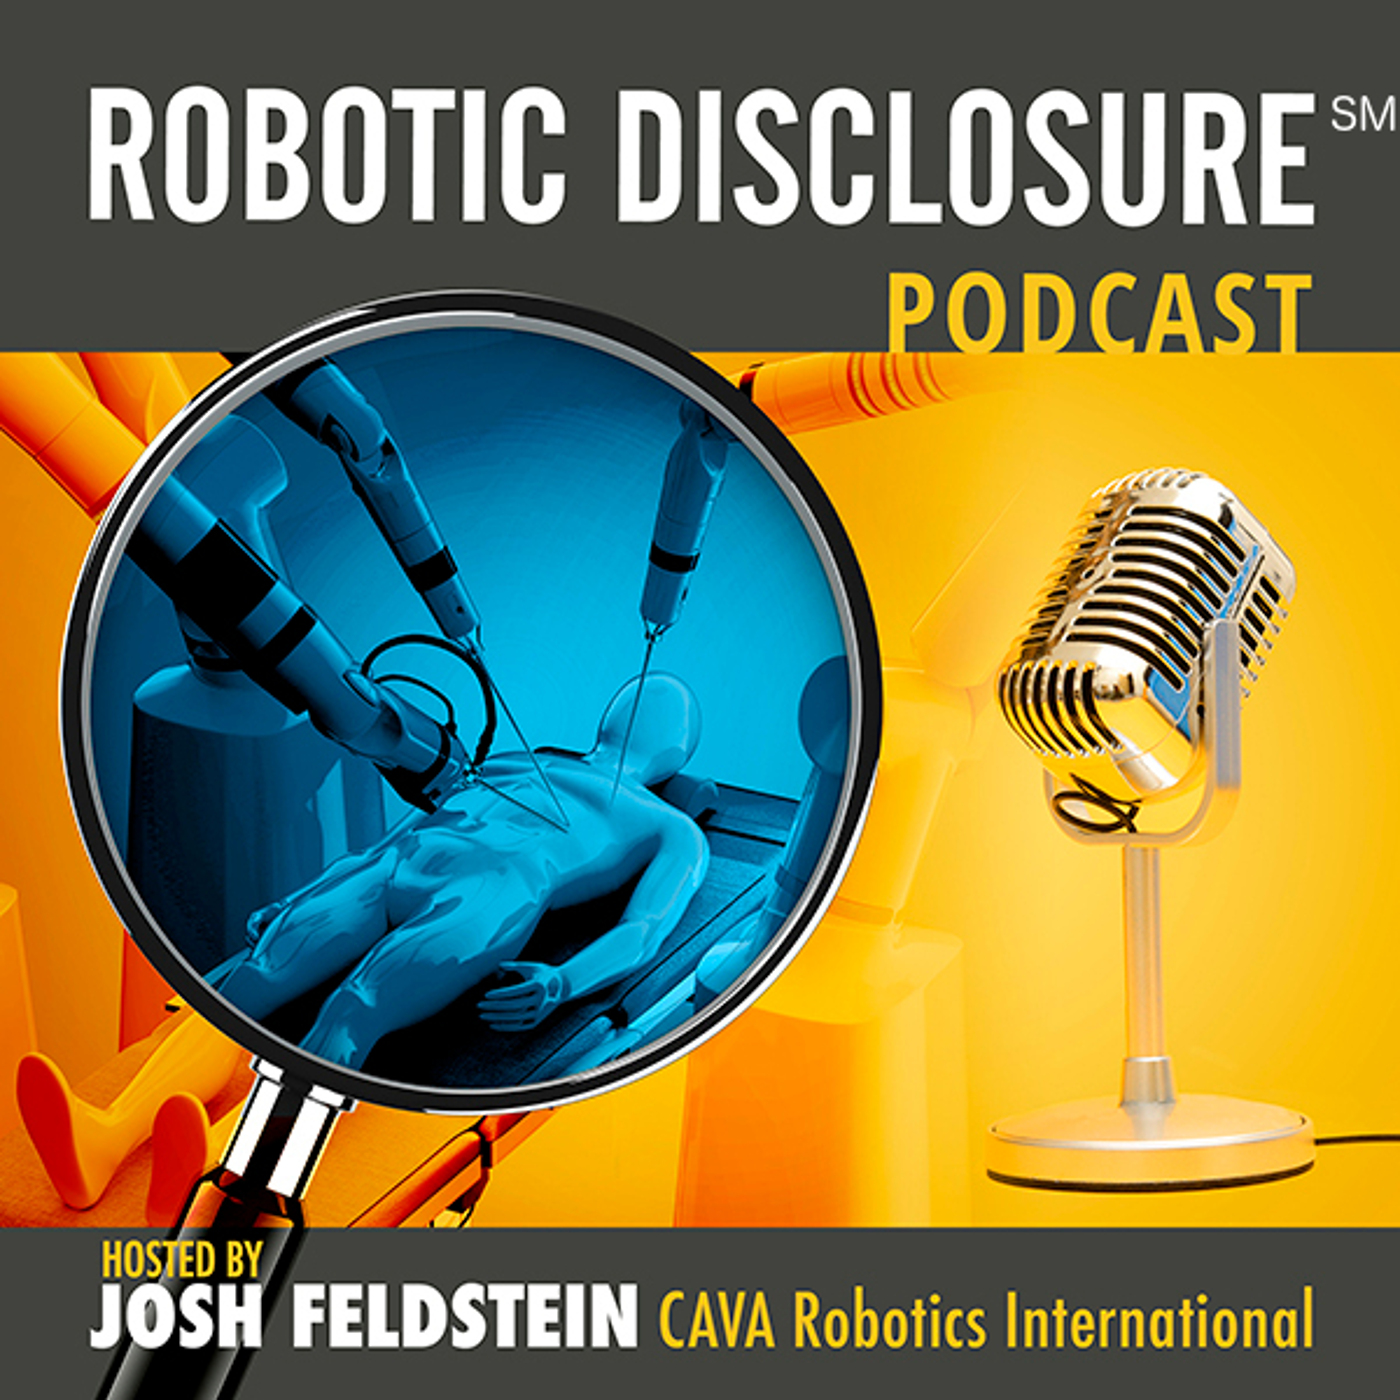 ROBOTIC DISCLOSURE